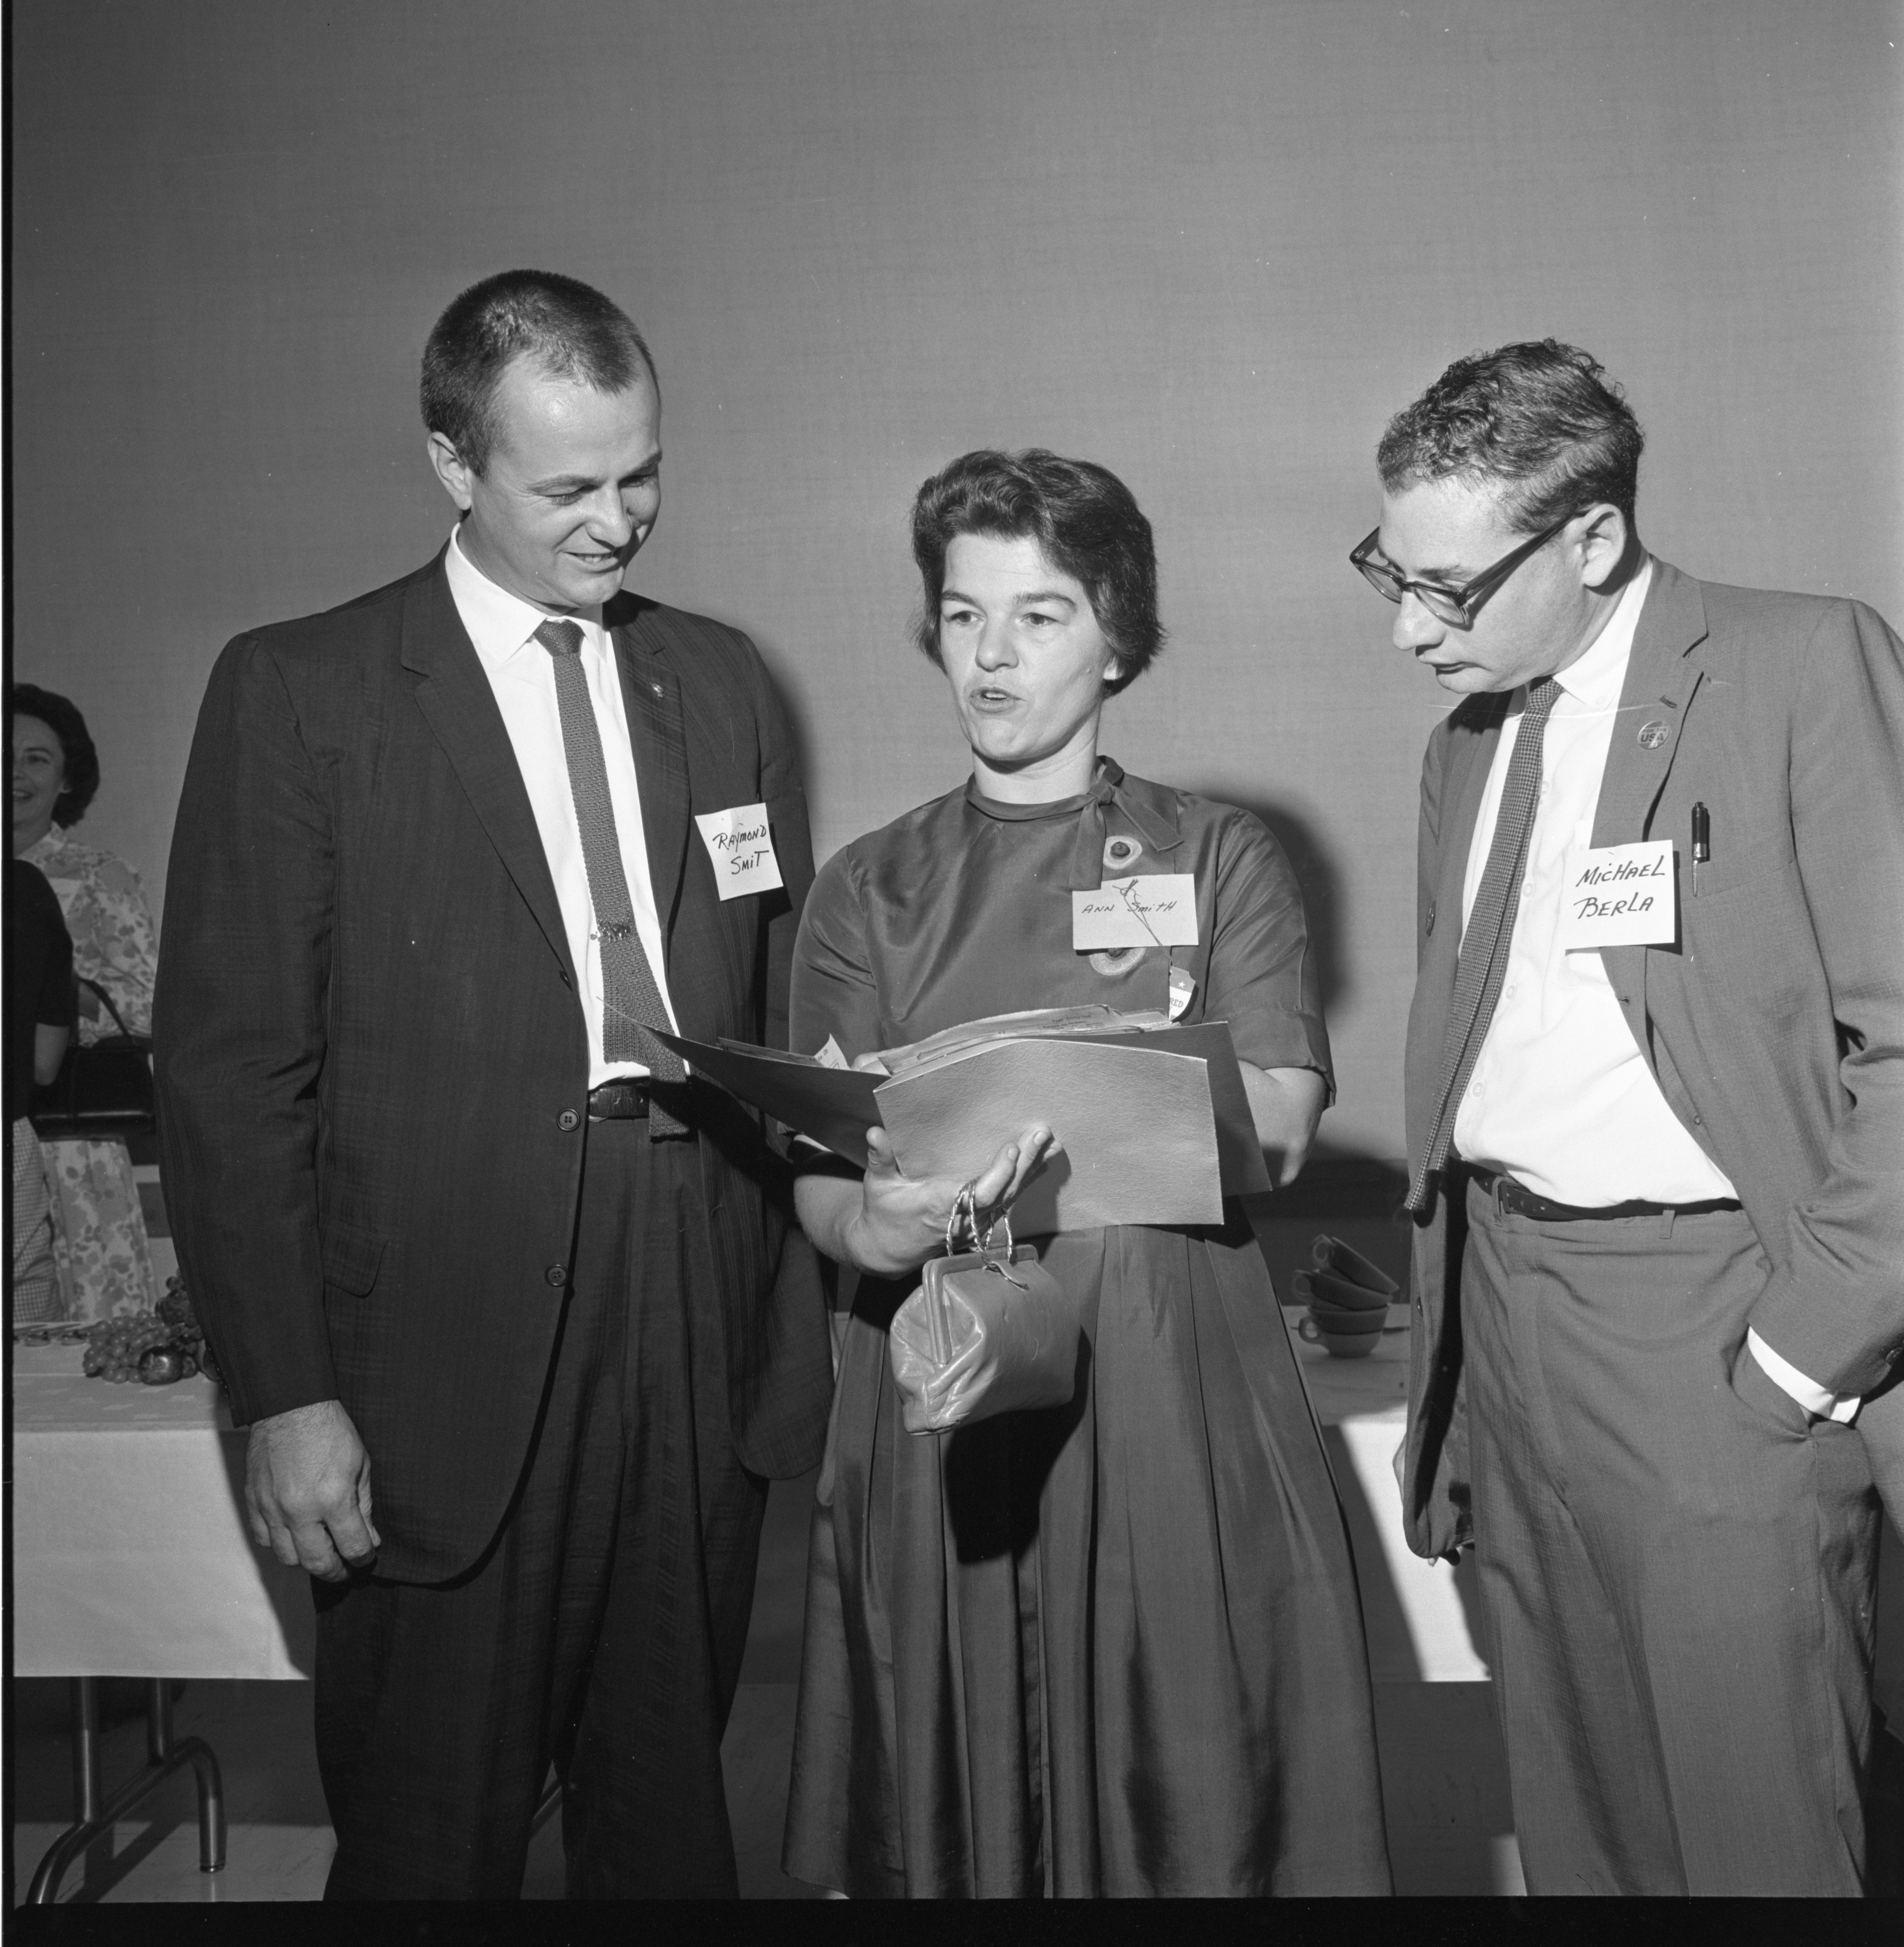 Ann Smith Talks Politics With Raymond Smit & Michael Berla At The League Of Women Voters Annual Meeting, September 1964 image